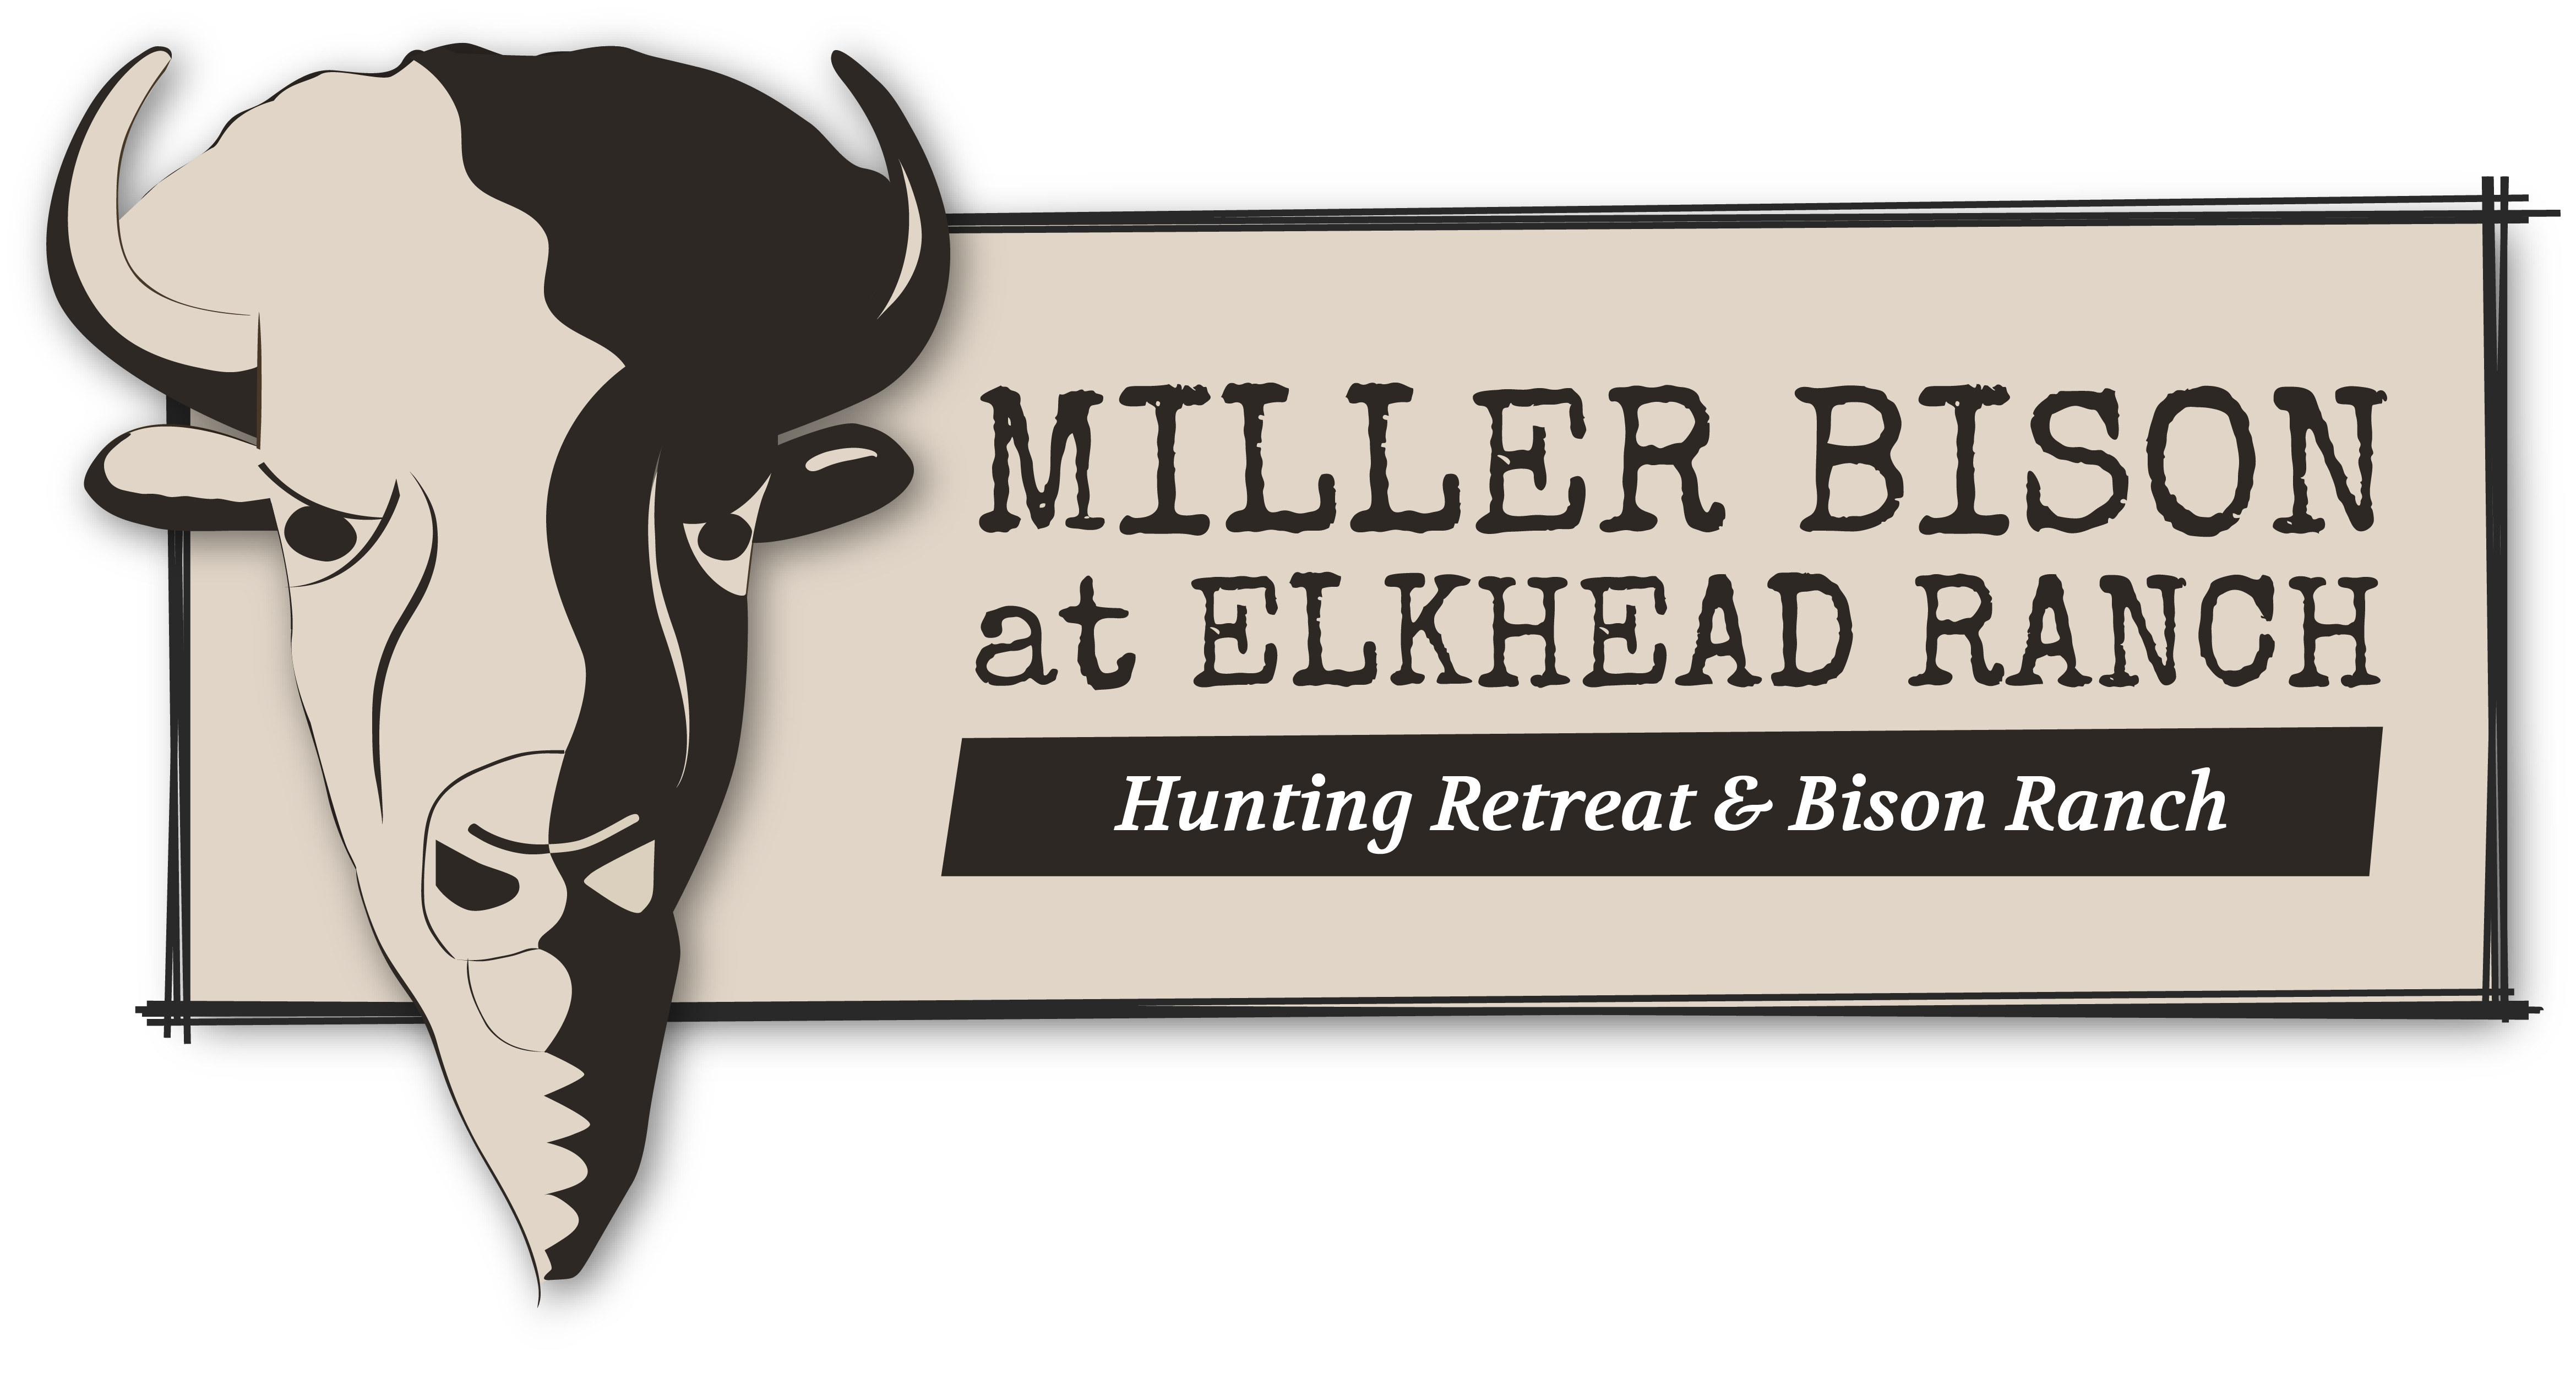 Miller Bison at Elkhead Ranch